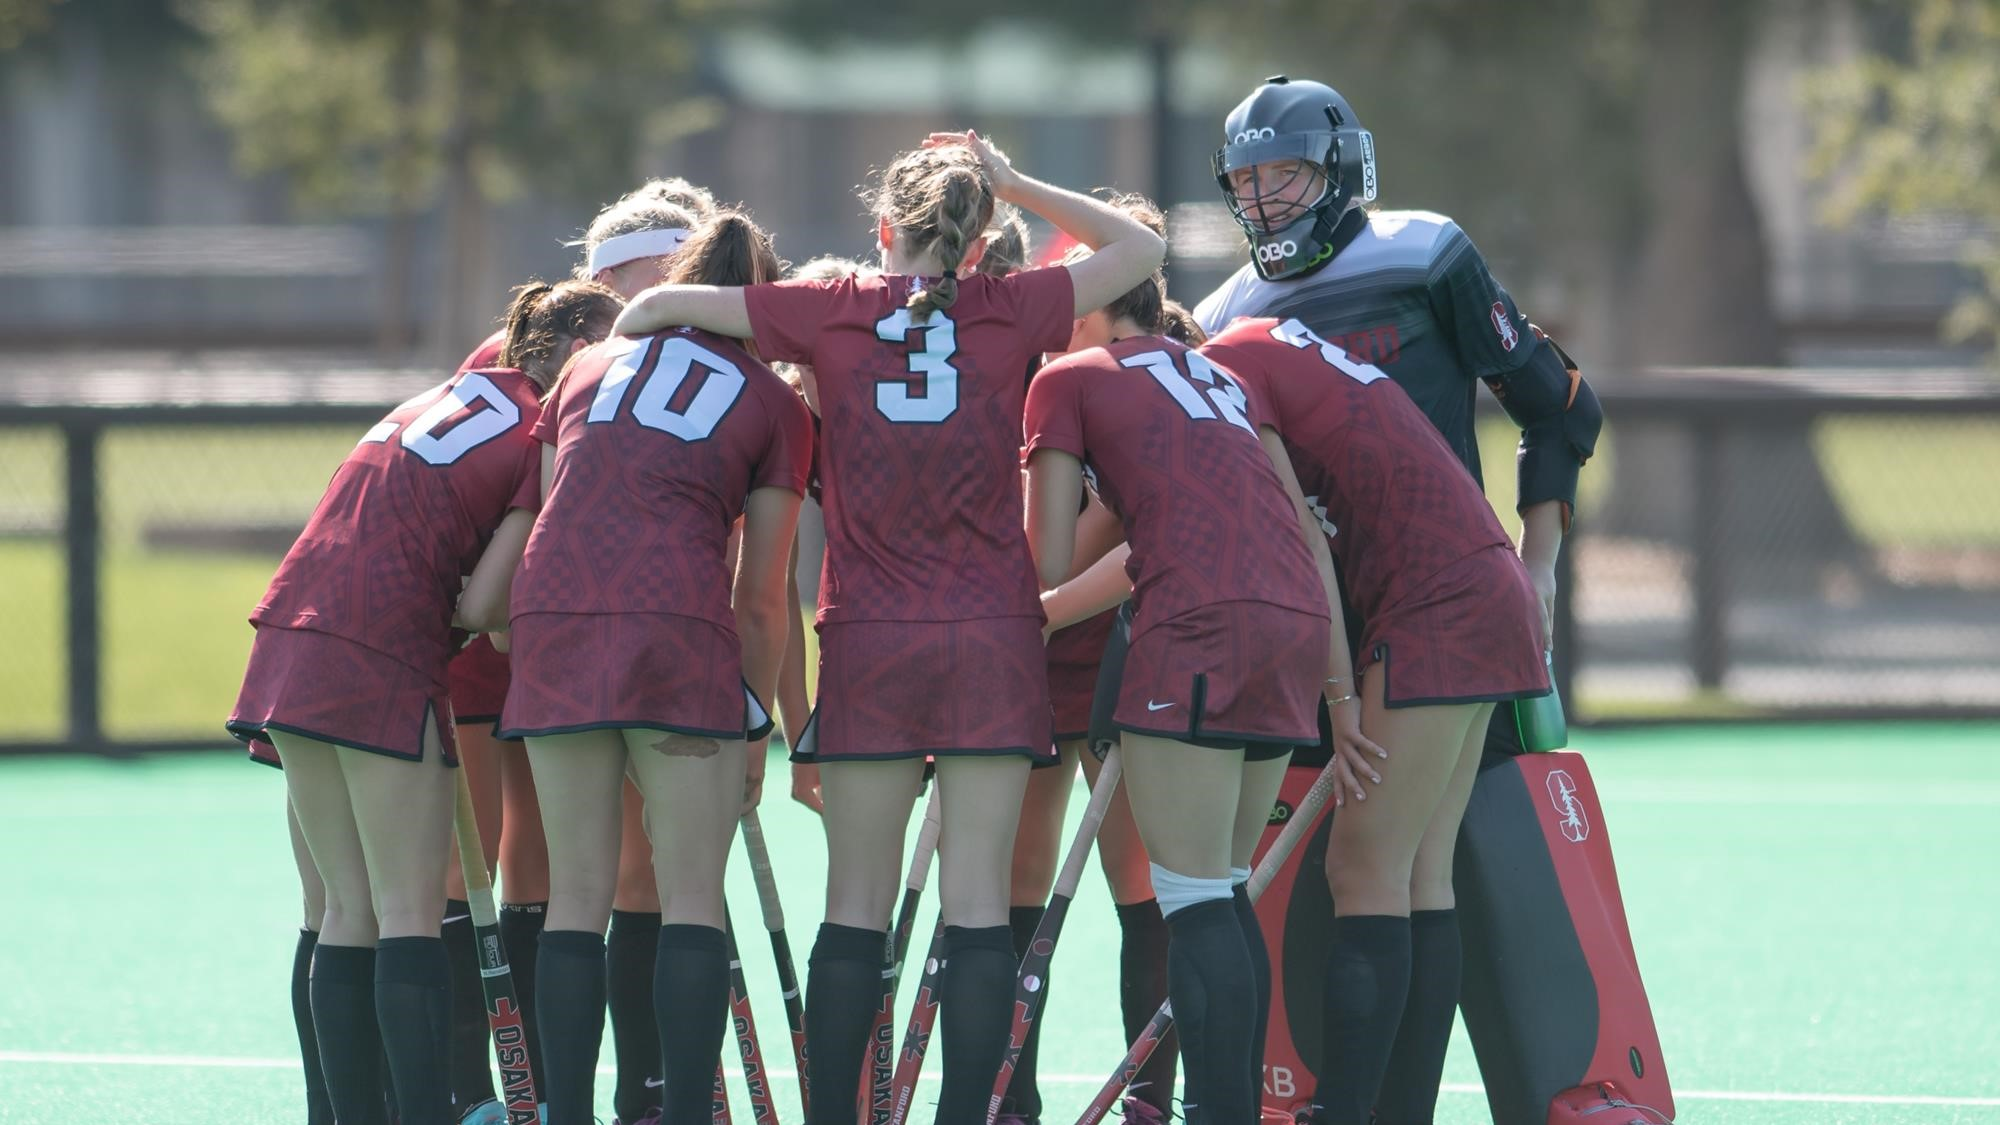 Stanford_women_s_field_hockey_team_lr_08262016_143